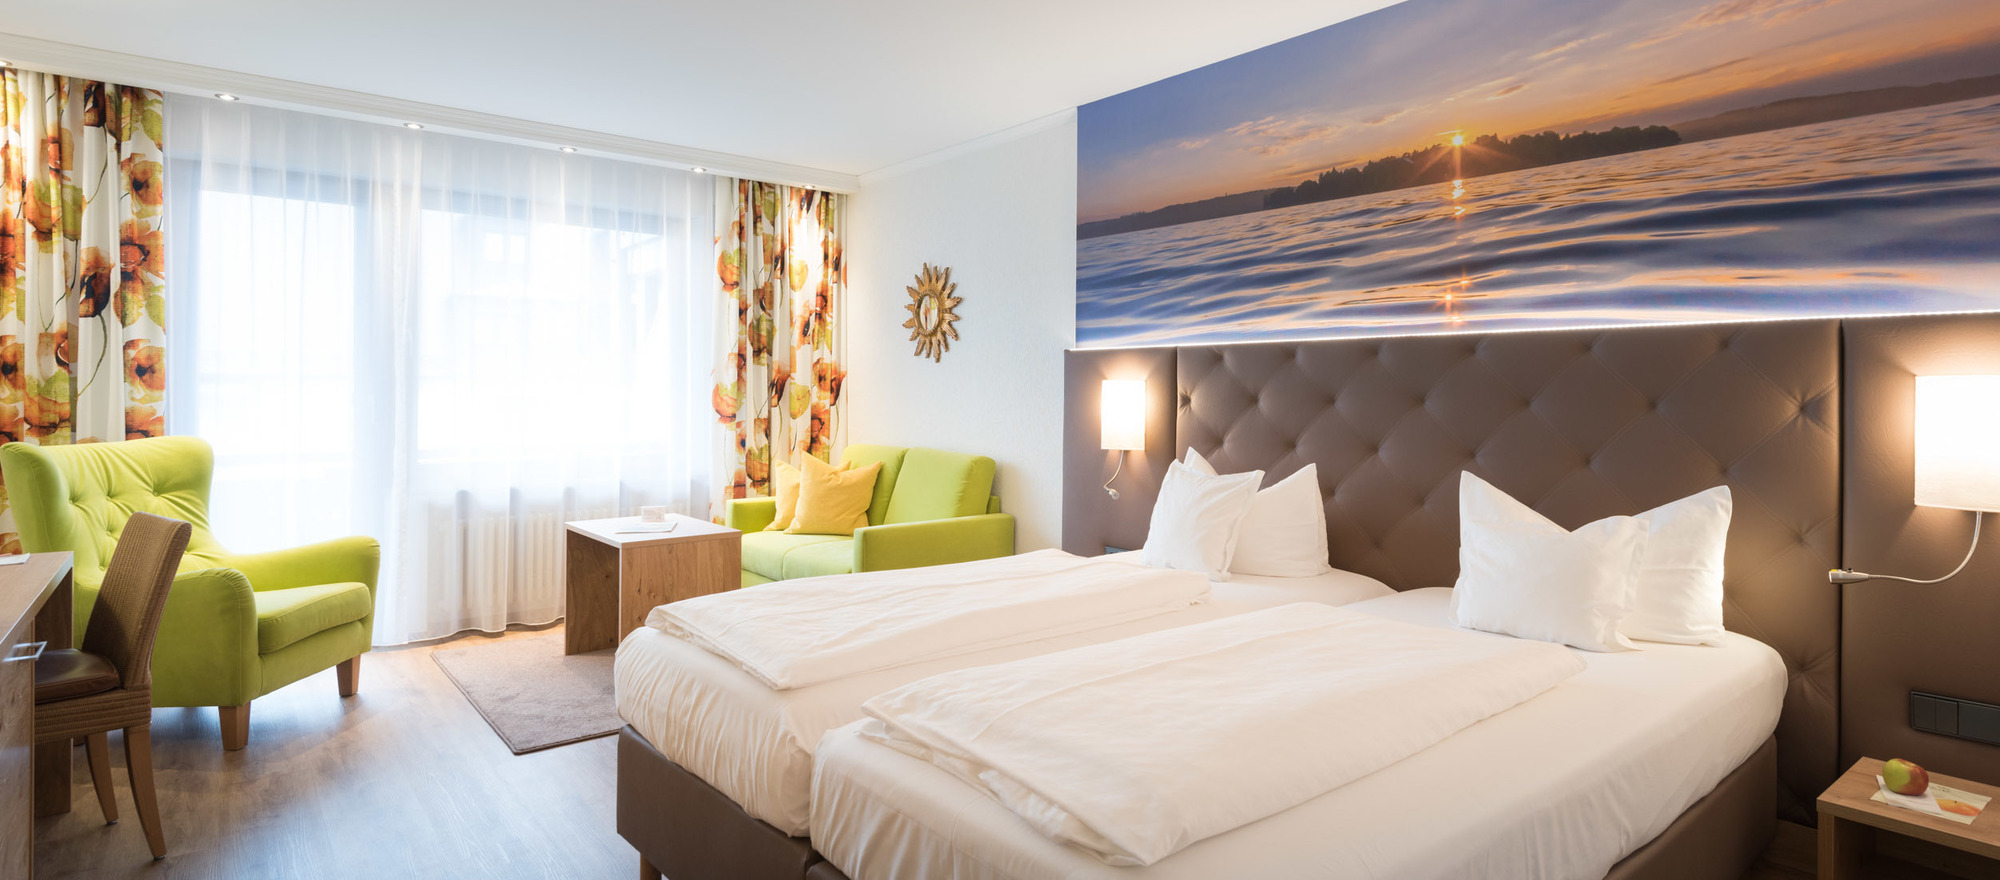 Room Sonnenbuechel in the Ringhotel Krone in Friedrichshafen, 4 stars superior hotel at Lake Constance